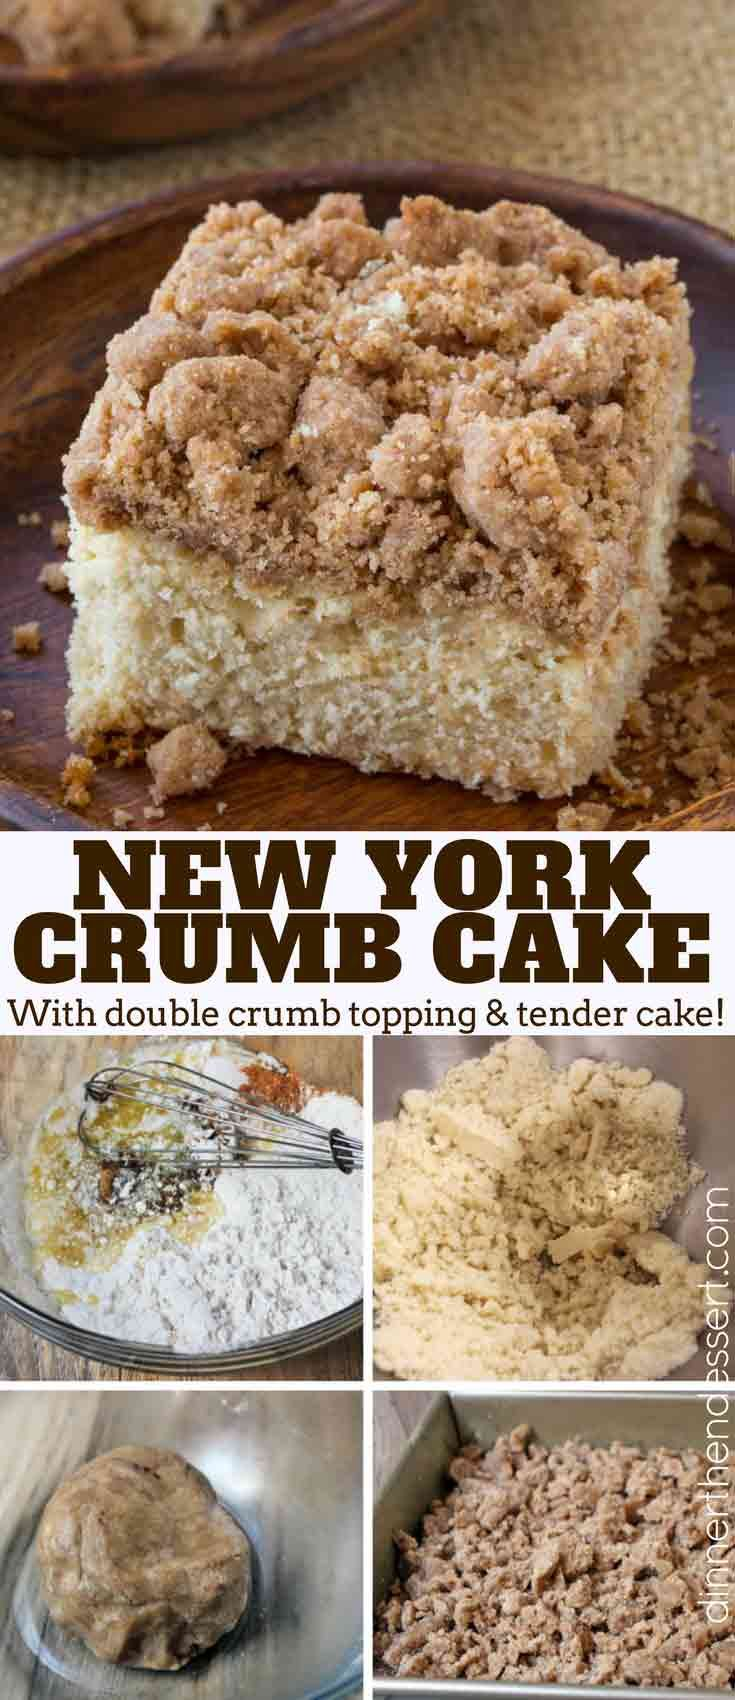 Classic New York Crumb Cake just like the kind you would find in your favorite coffee shop, a tender cake topped with large chunks of cinnamon sugar goodness!